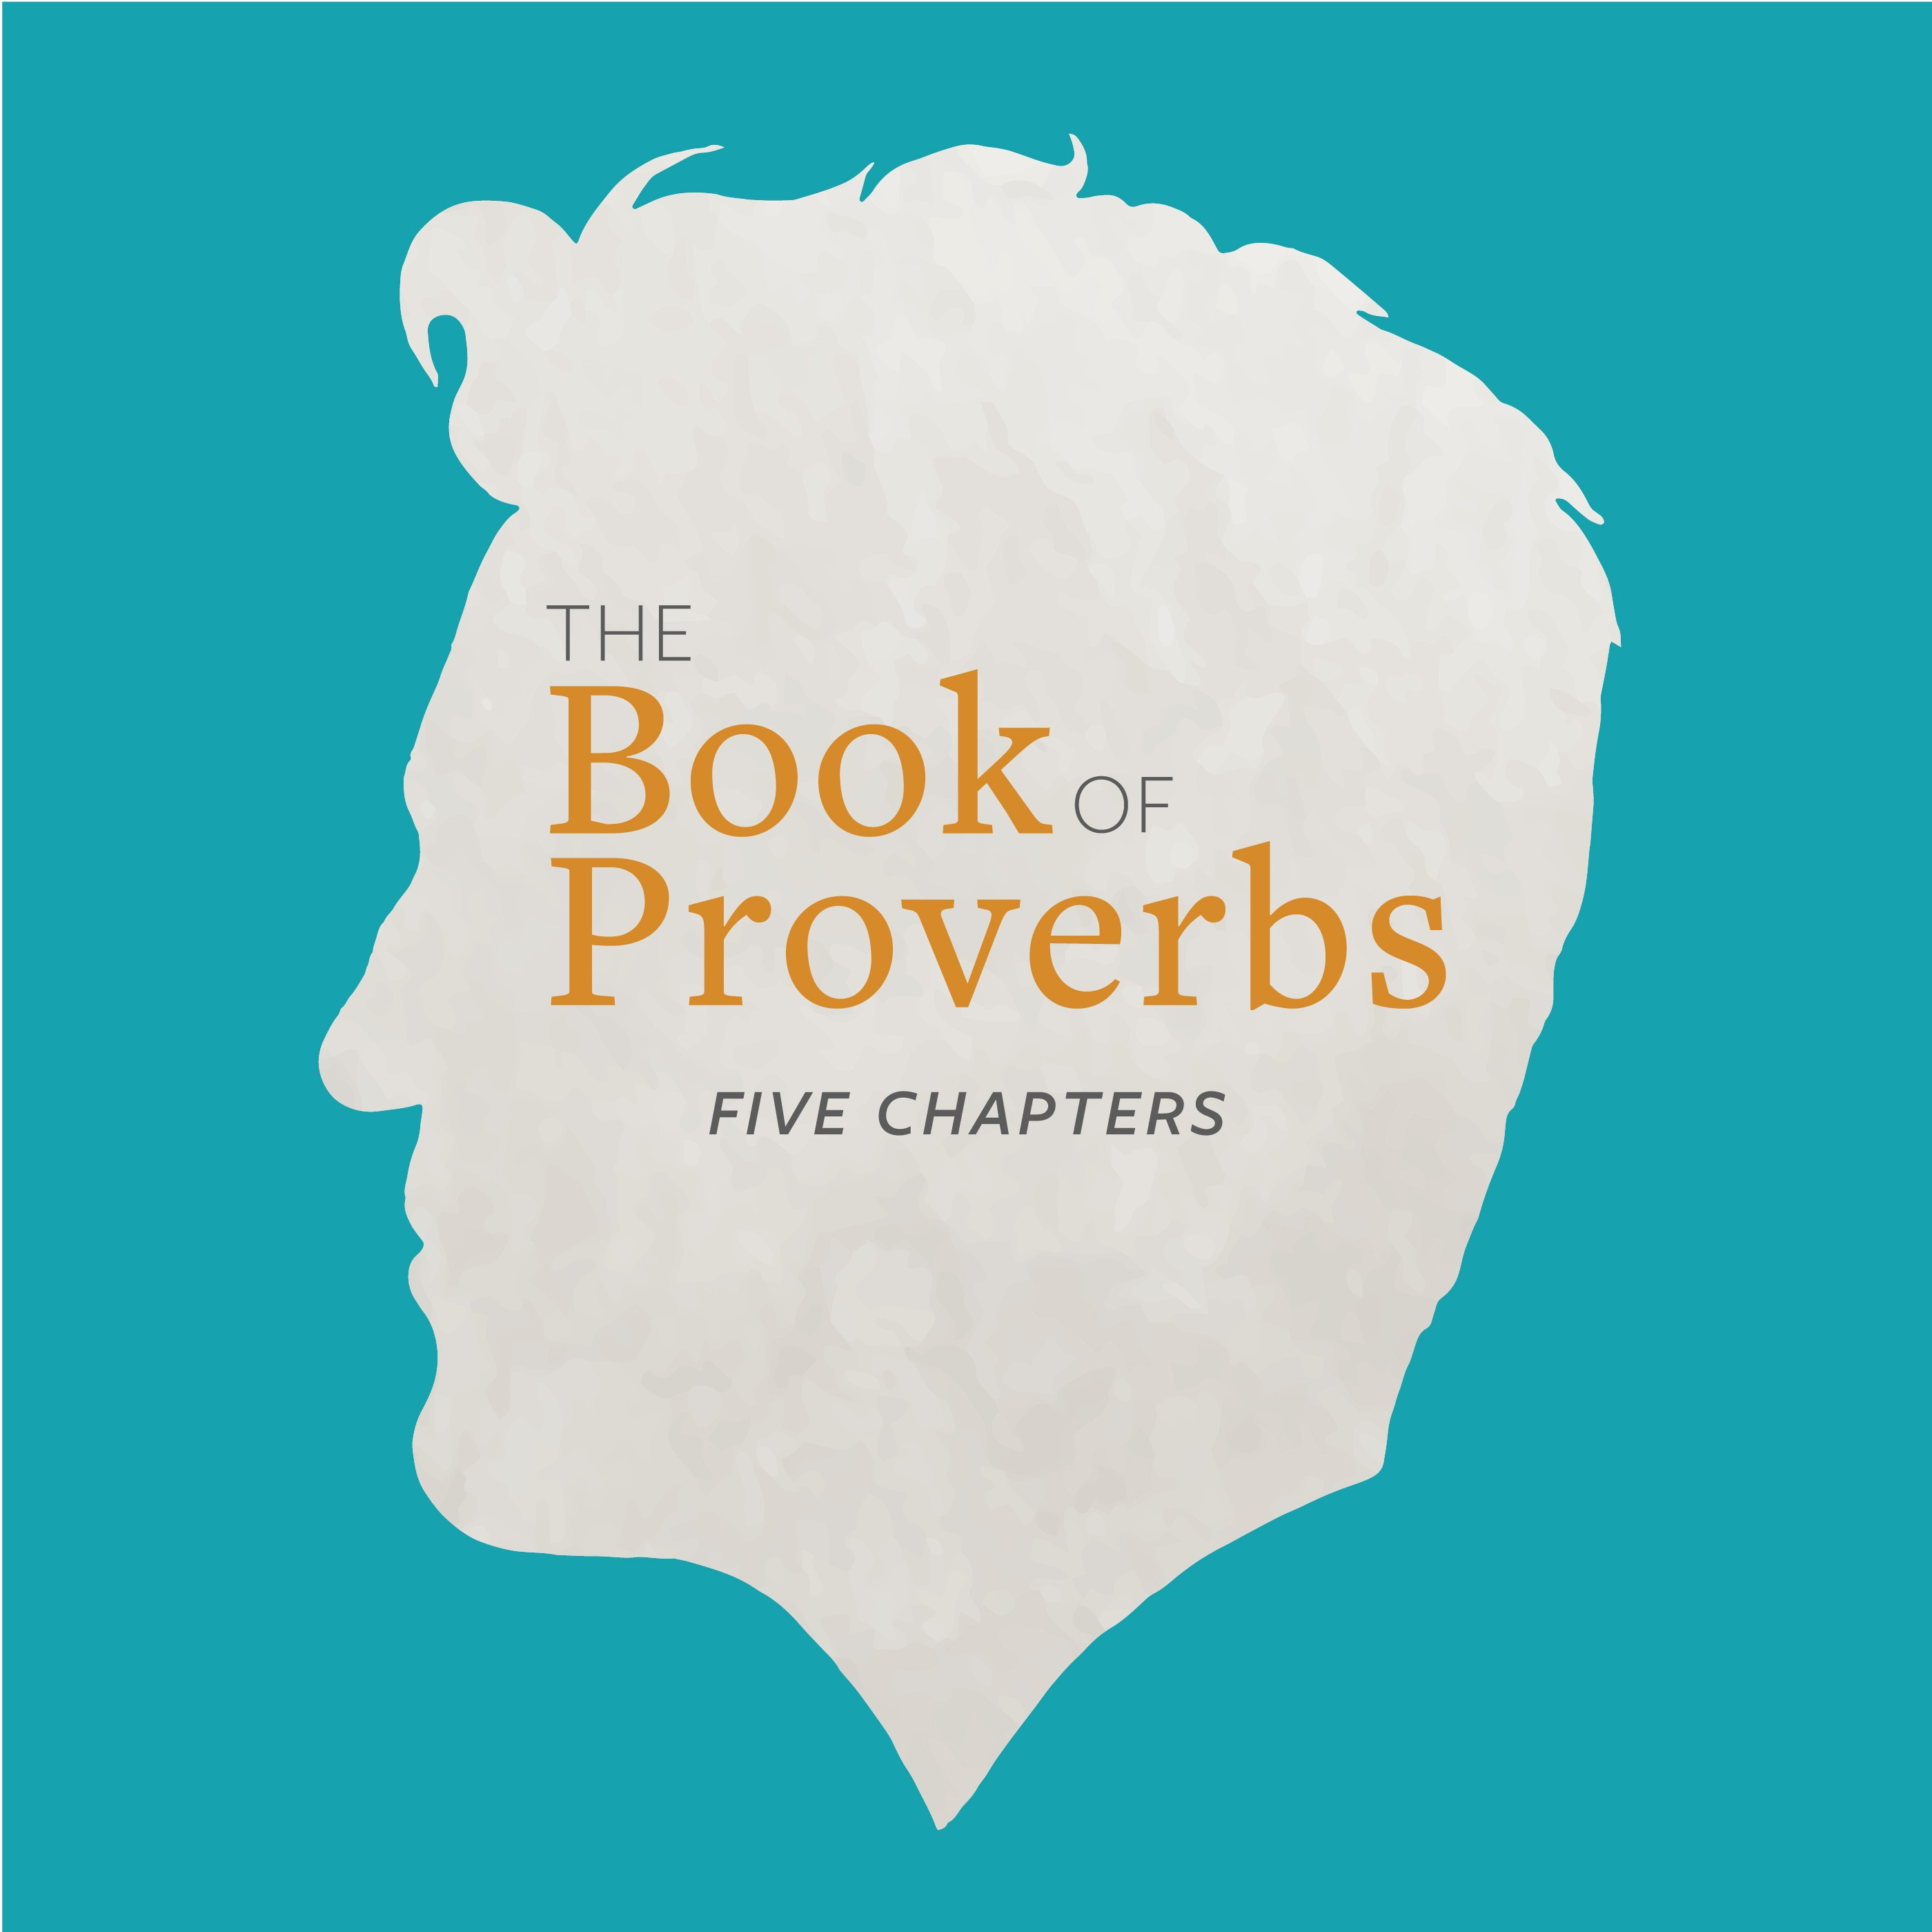 The Book of Proverbs - 5 chapters